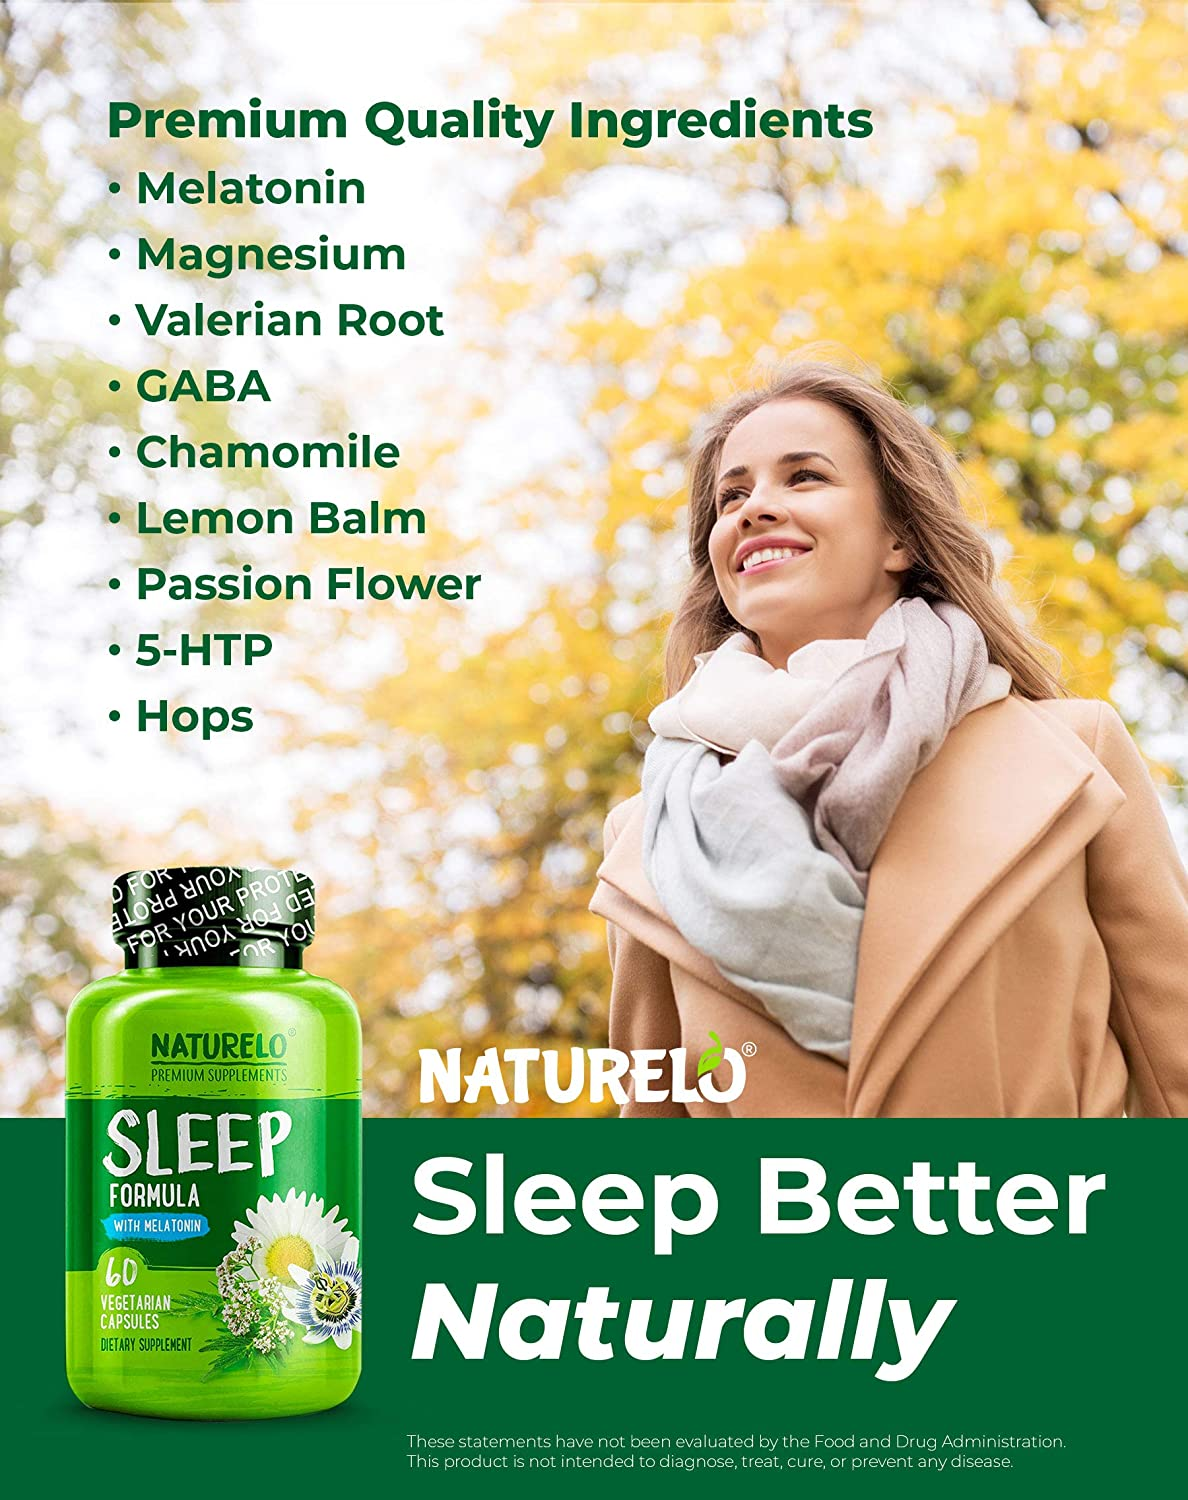 Amazon.com: NATURELO Natural Sleep Aid – with Melatonin, Magnesium, GABA, Valerian Root, Lemon Balm, Chamomile Extracts - Best Natural Sleeping Aid - 60 ...